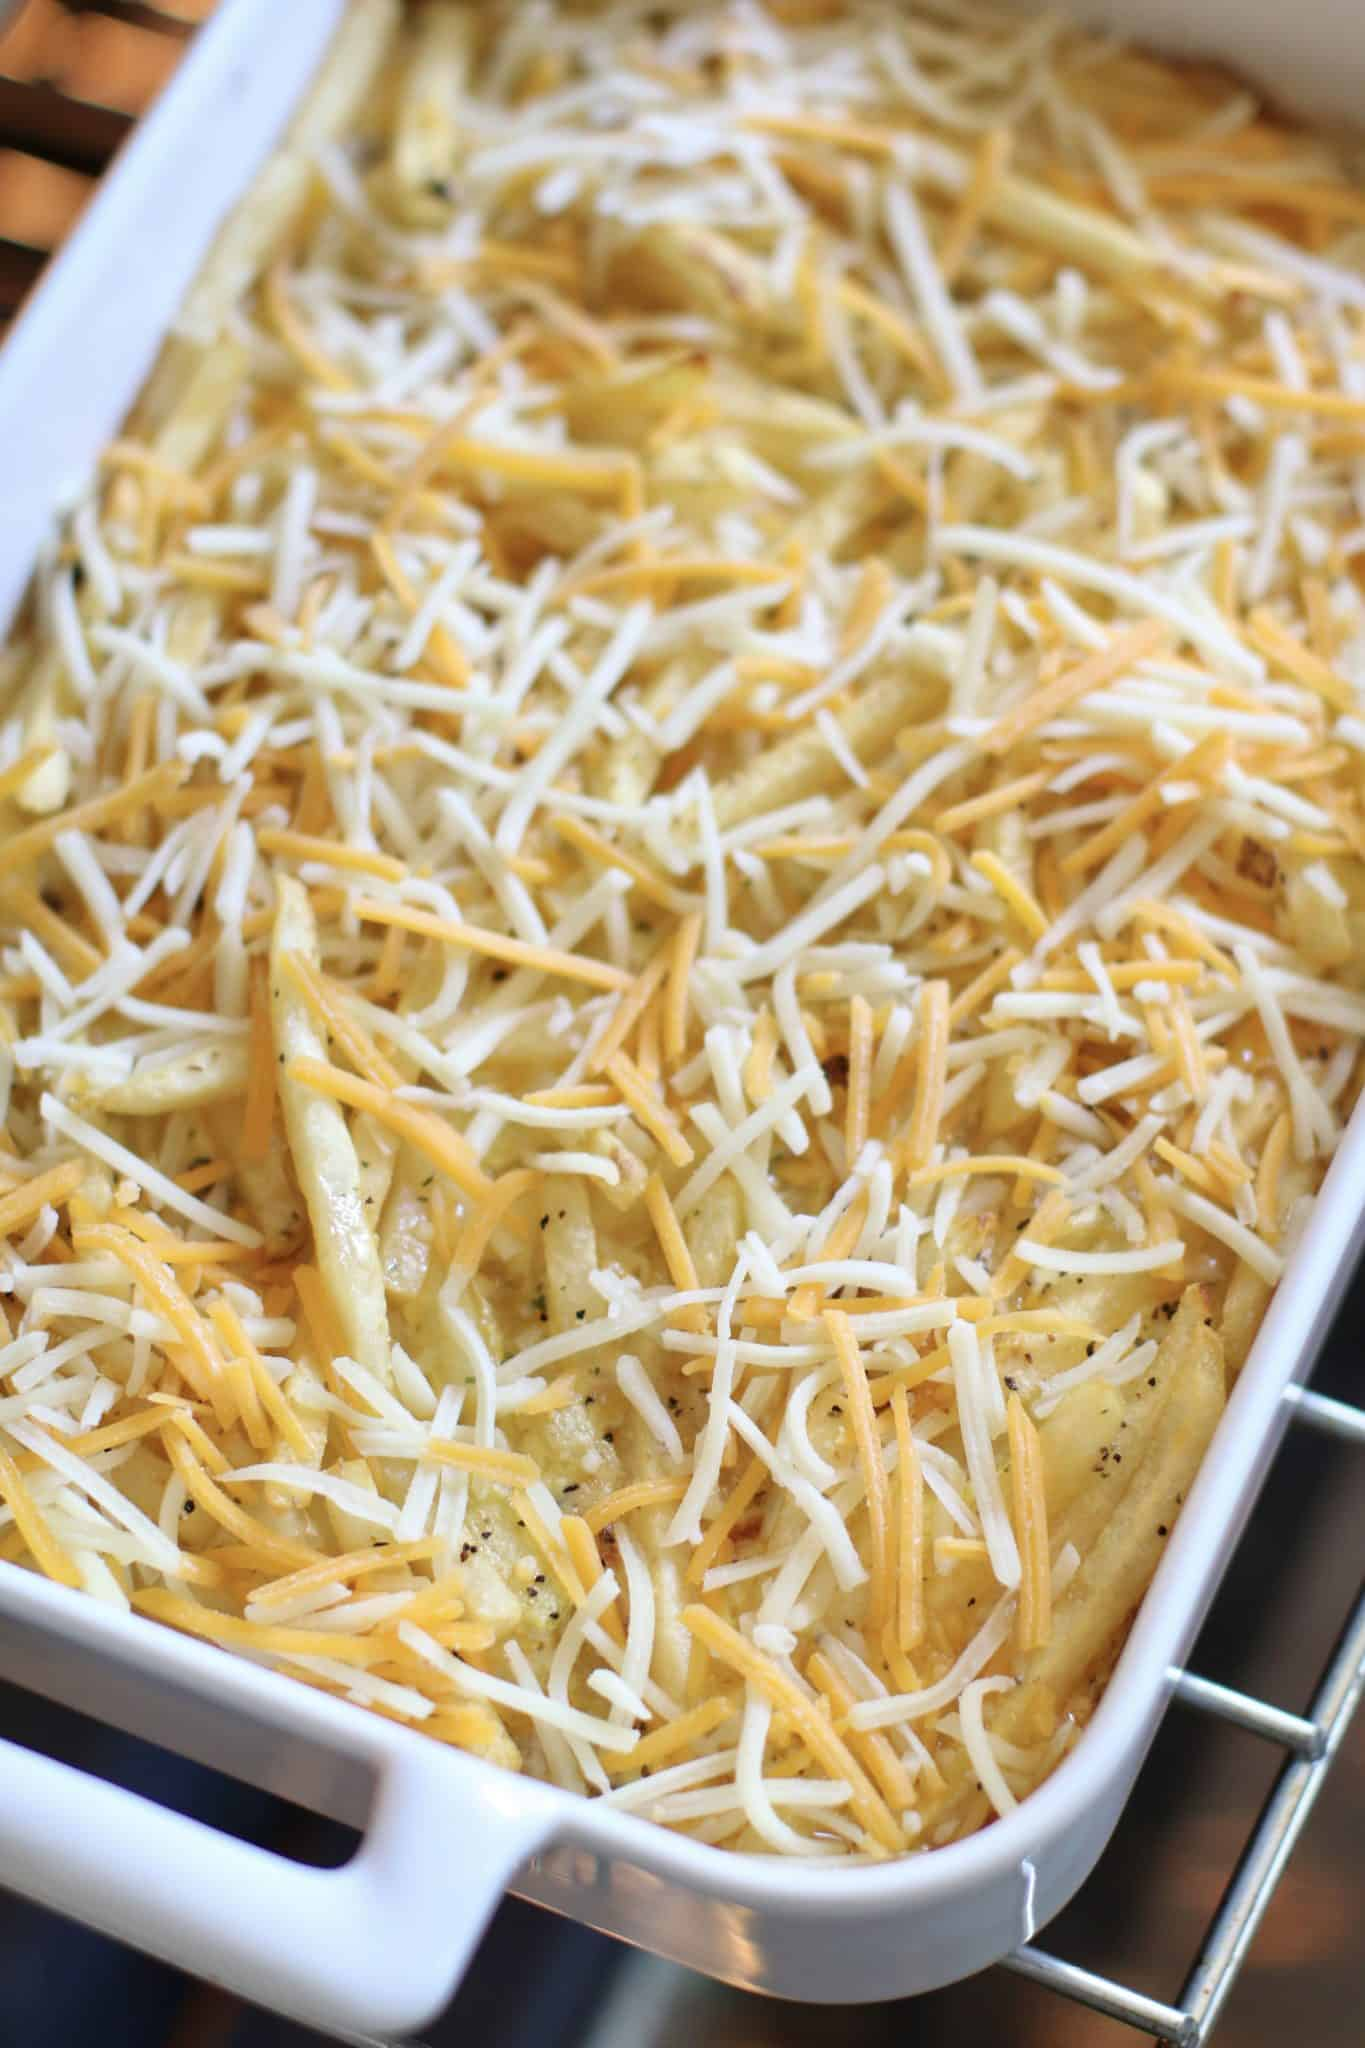 shredded cheese sprinkled onto cooked cheeseburger casserole.